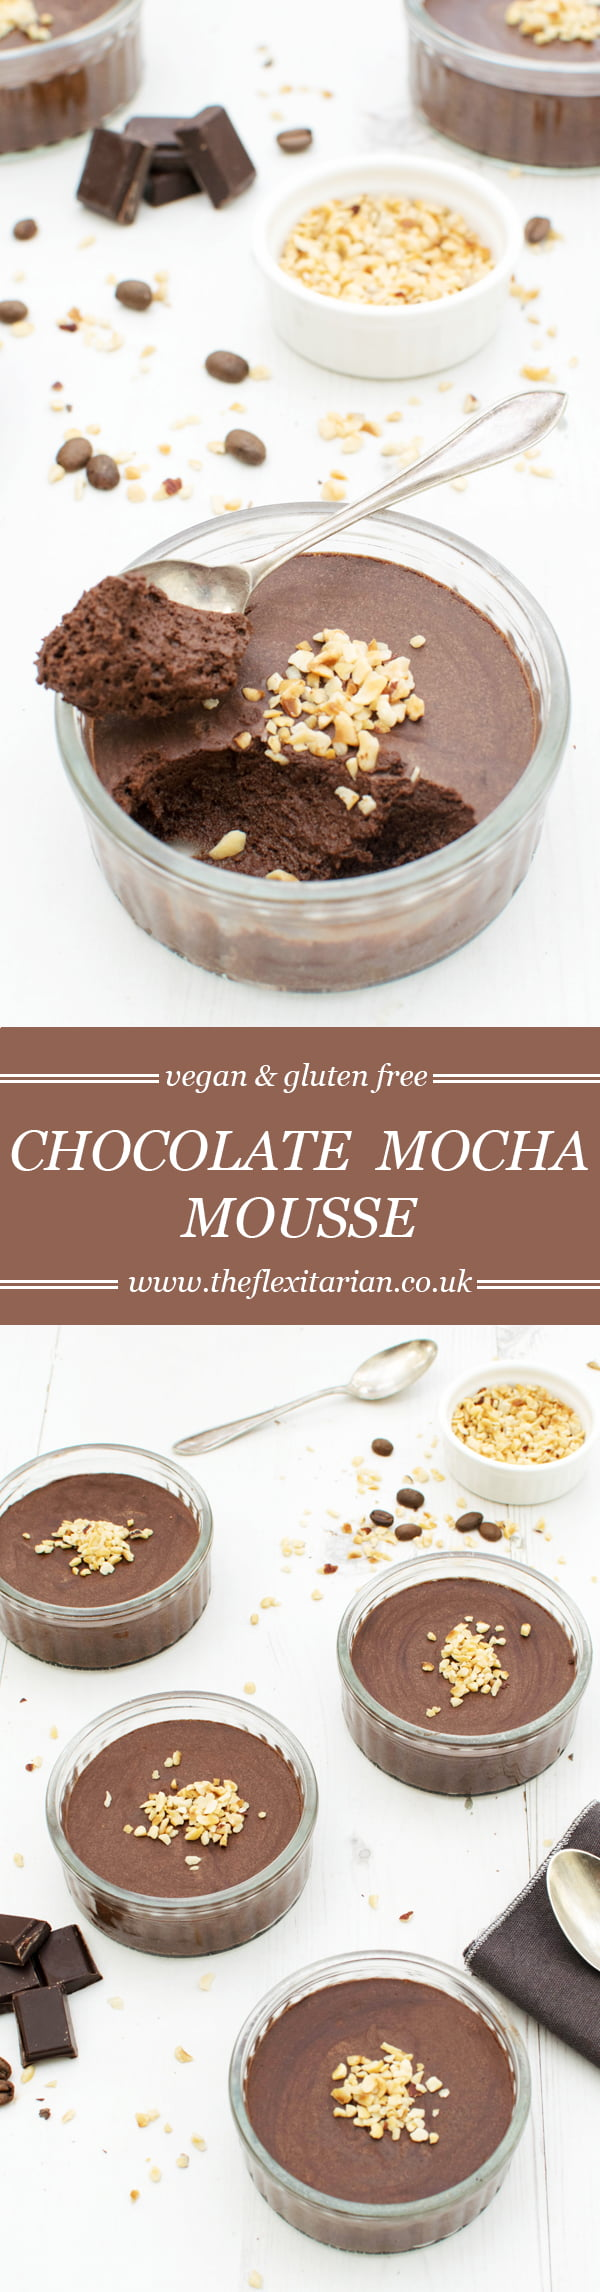 Chocolate Mocha Mousse [vegan] [gluten free] by The Flexitarian